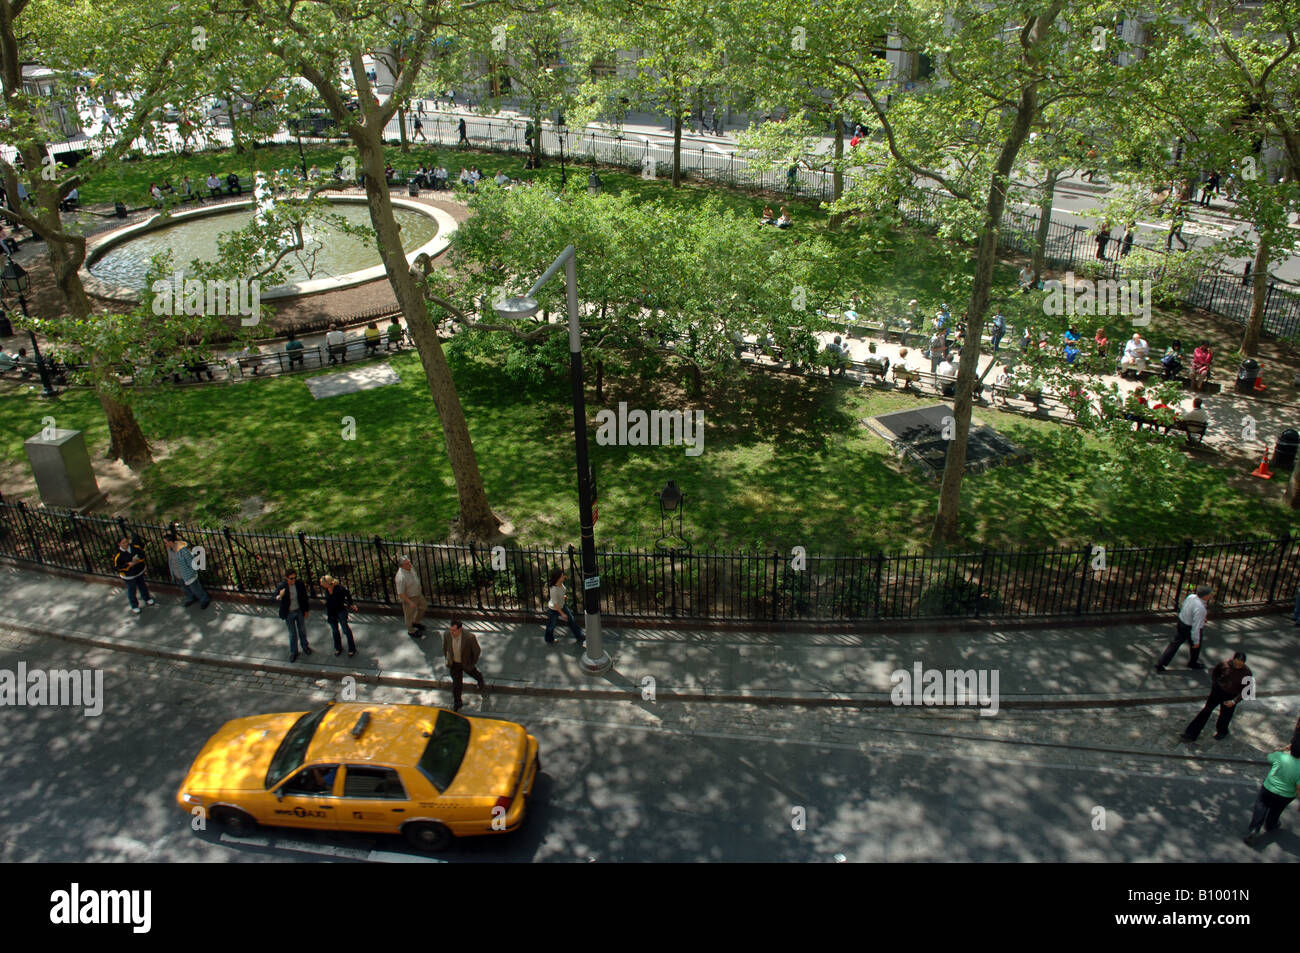 Buildings on Bowling Green park in New York City Photo Print